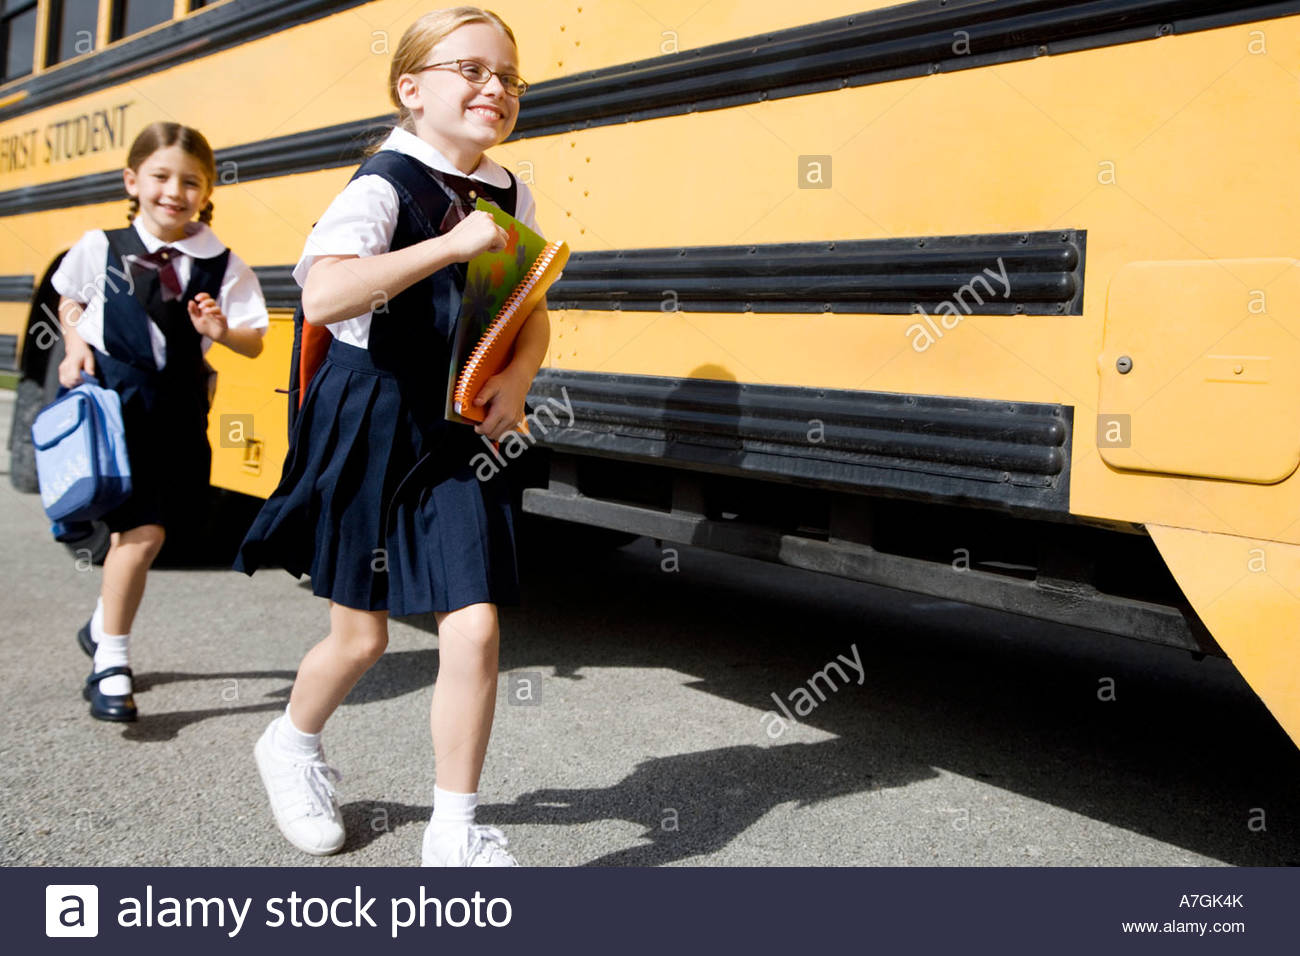 Two schoolgirls running for the school bus - Stock Image